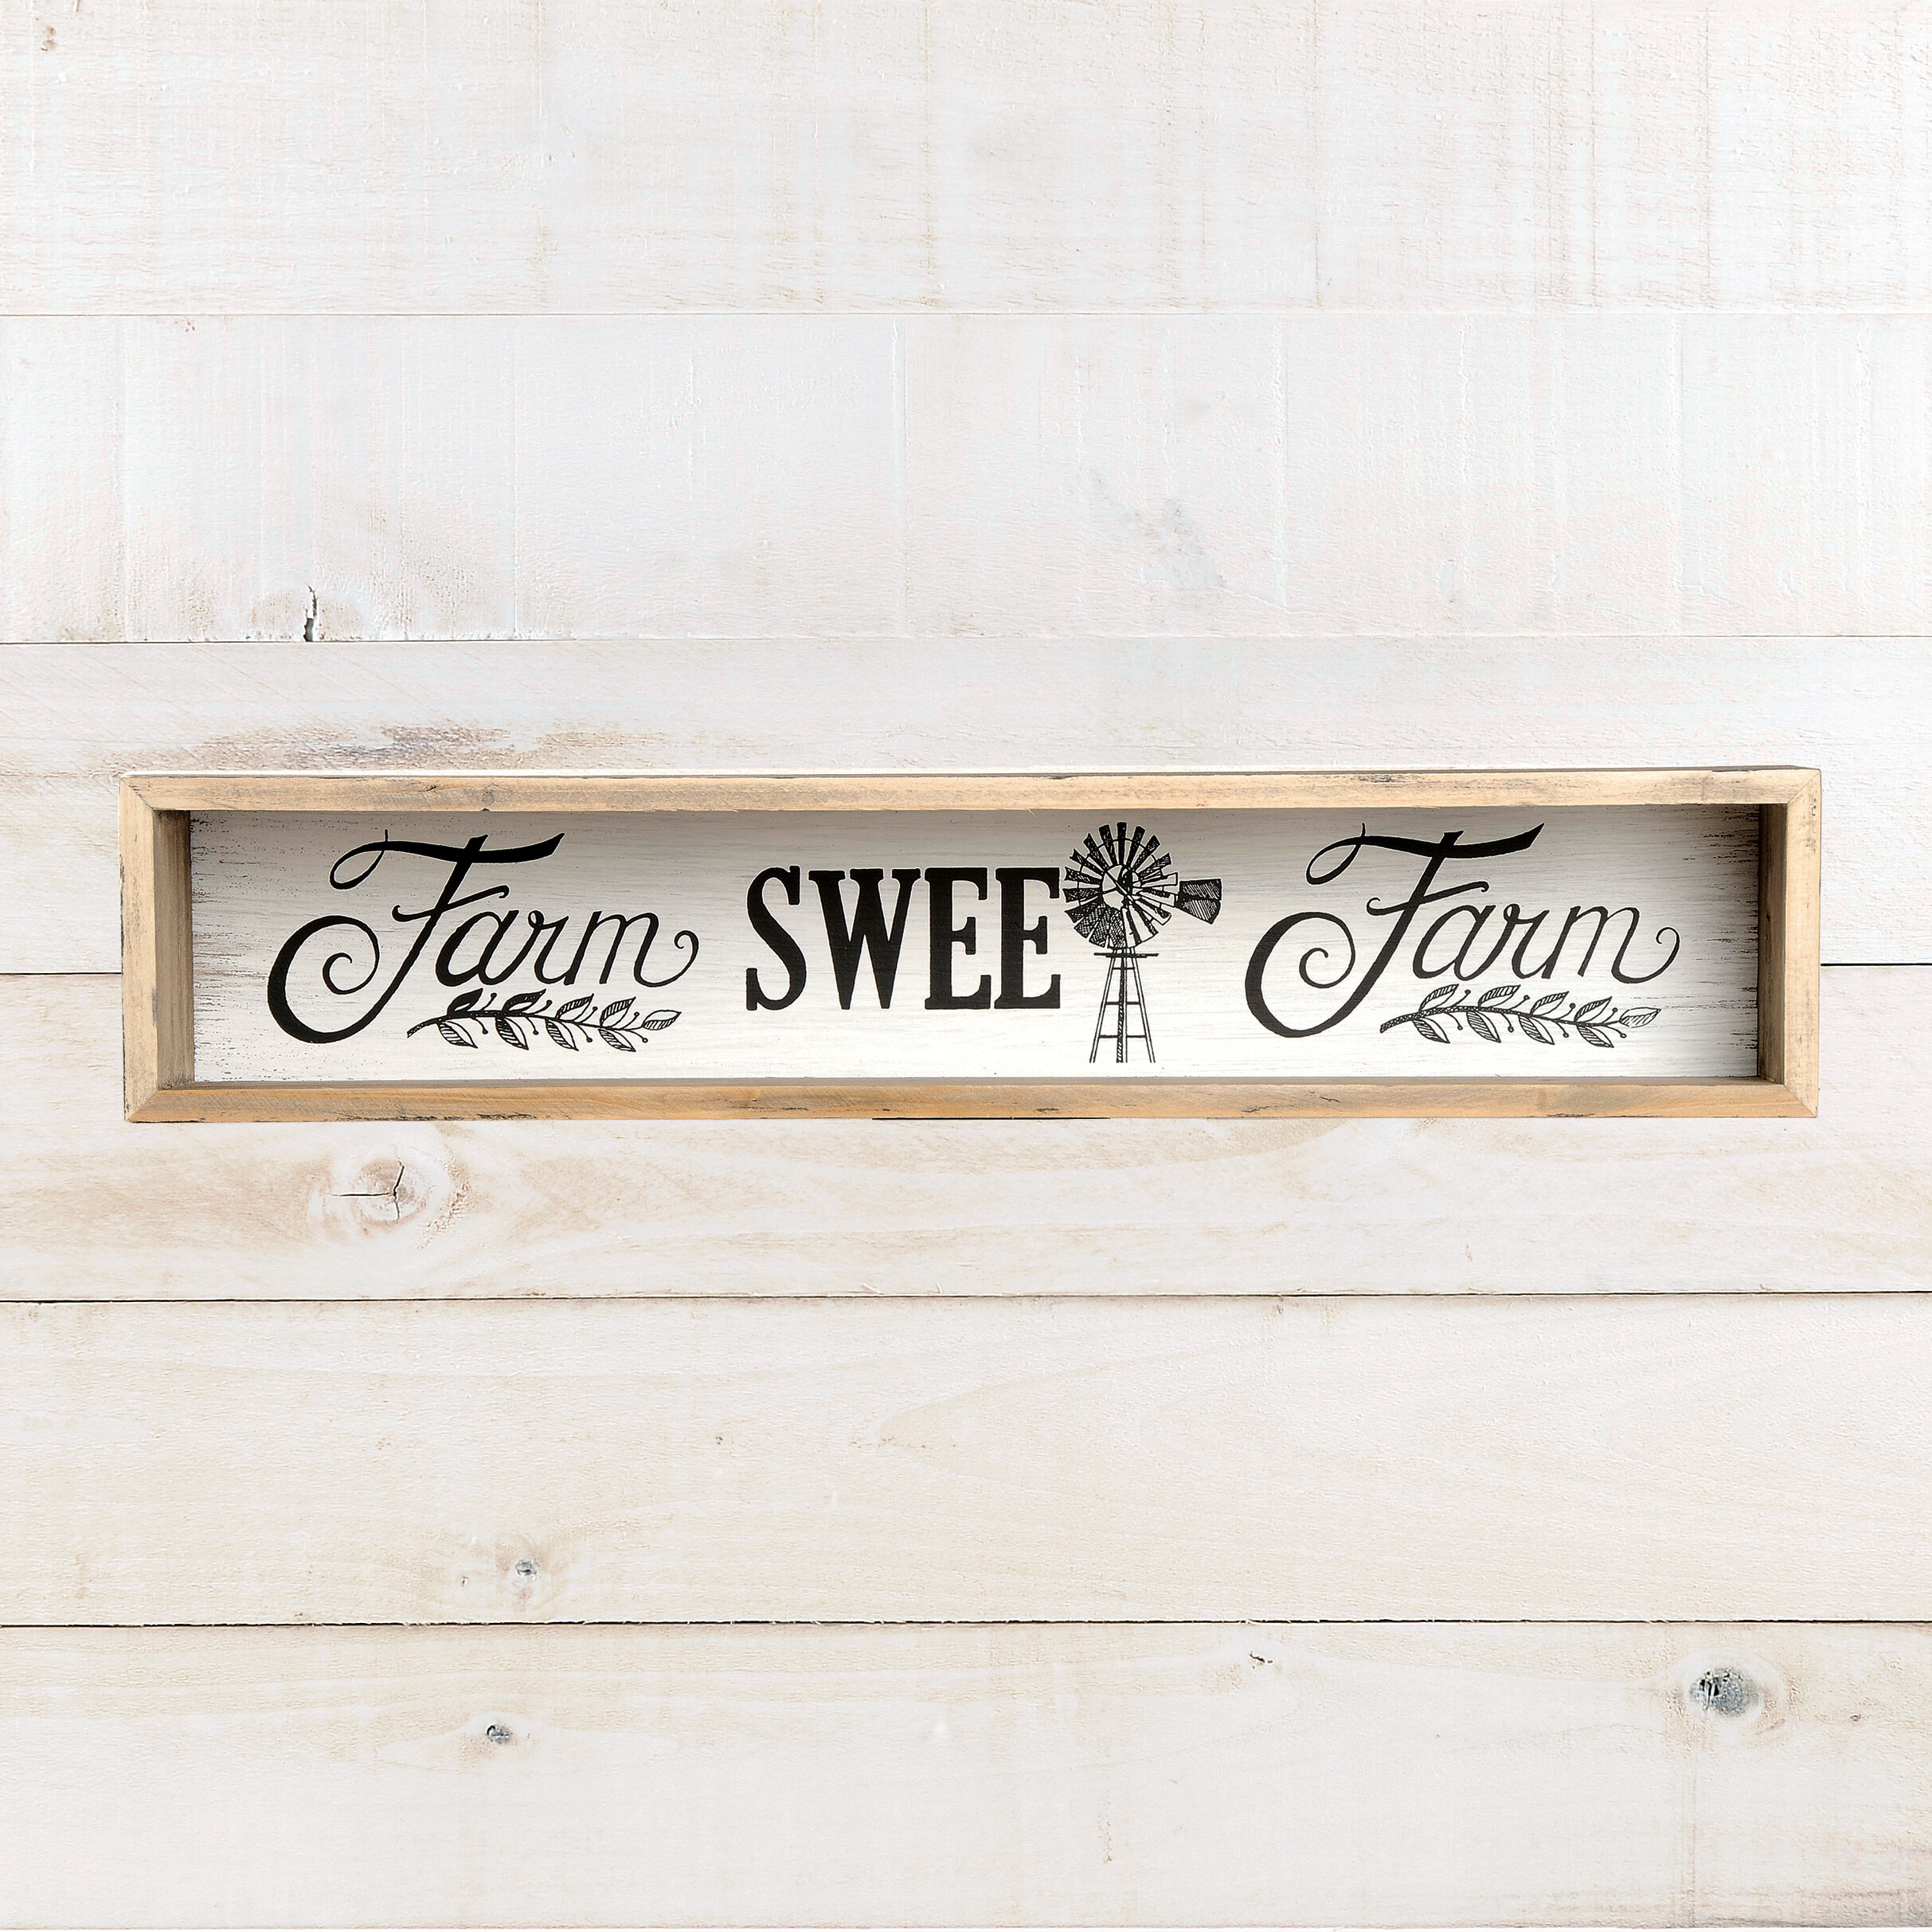 Home Sweet Home Wall Decor | Wayfair Inside Laser Engraved Home Sweet Home Wall Decor (View 18 of 30)